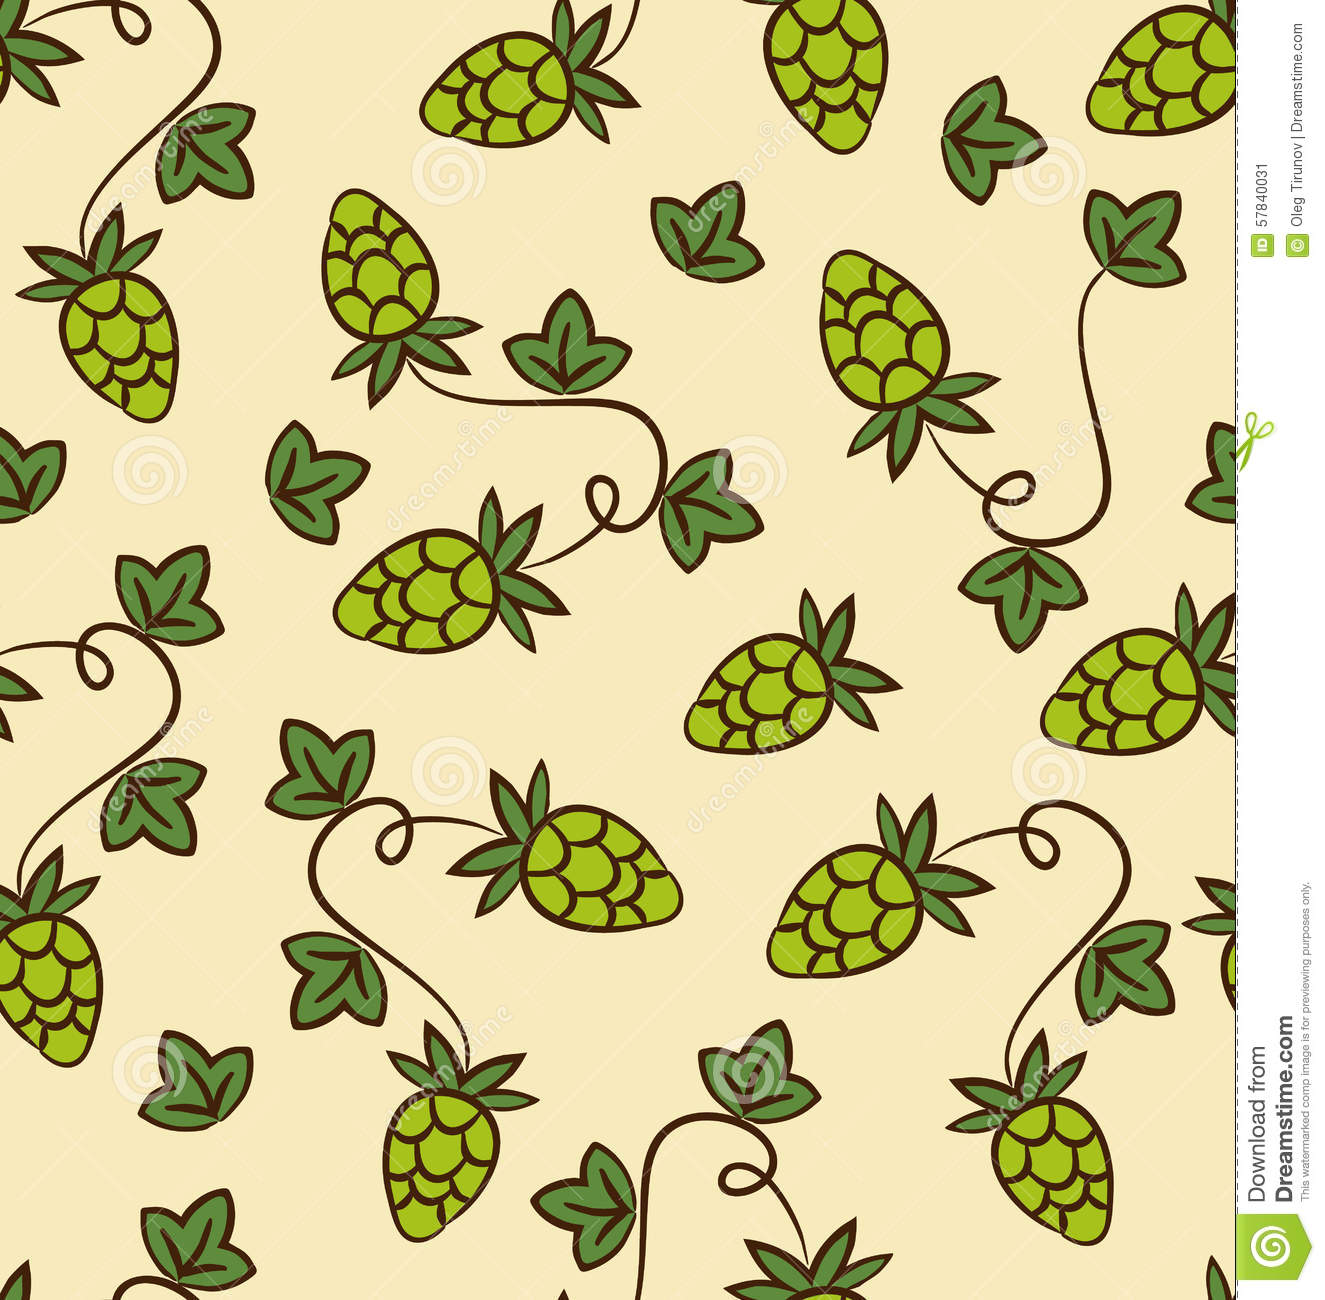 Seamless Pattern Hops Plans For Beer Stock Vector Illustration Of